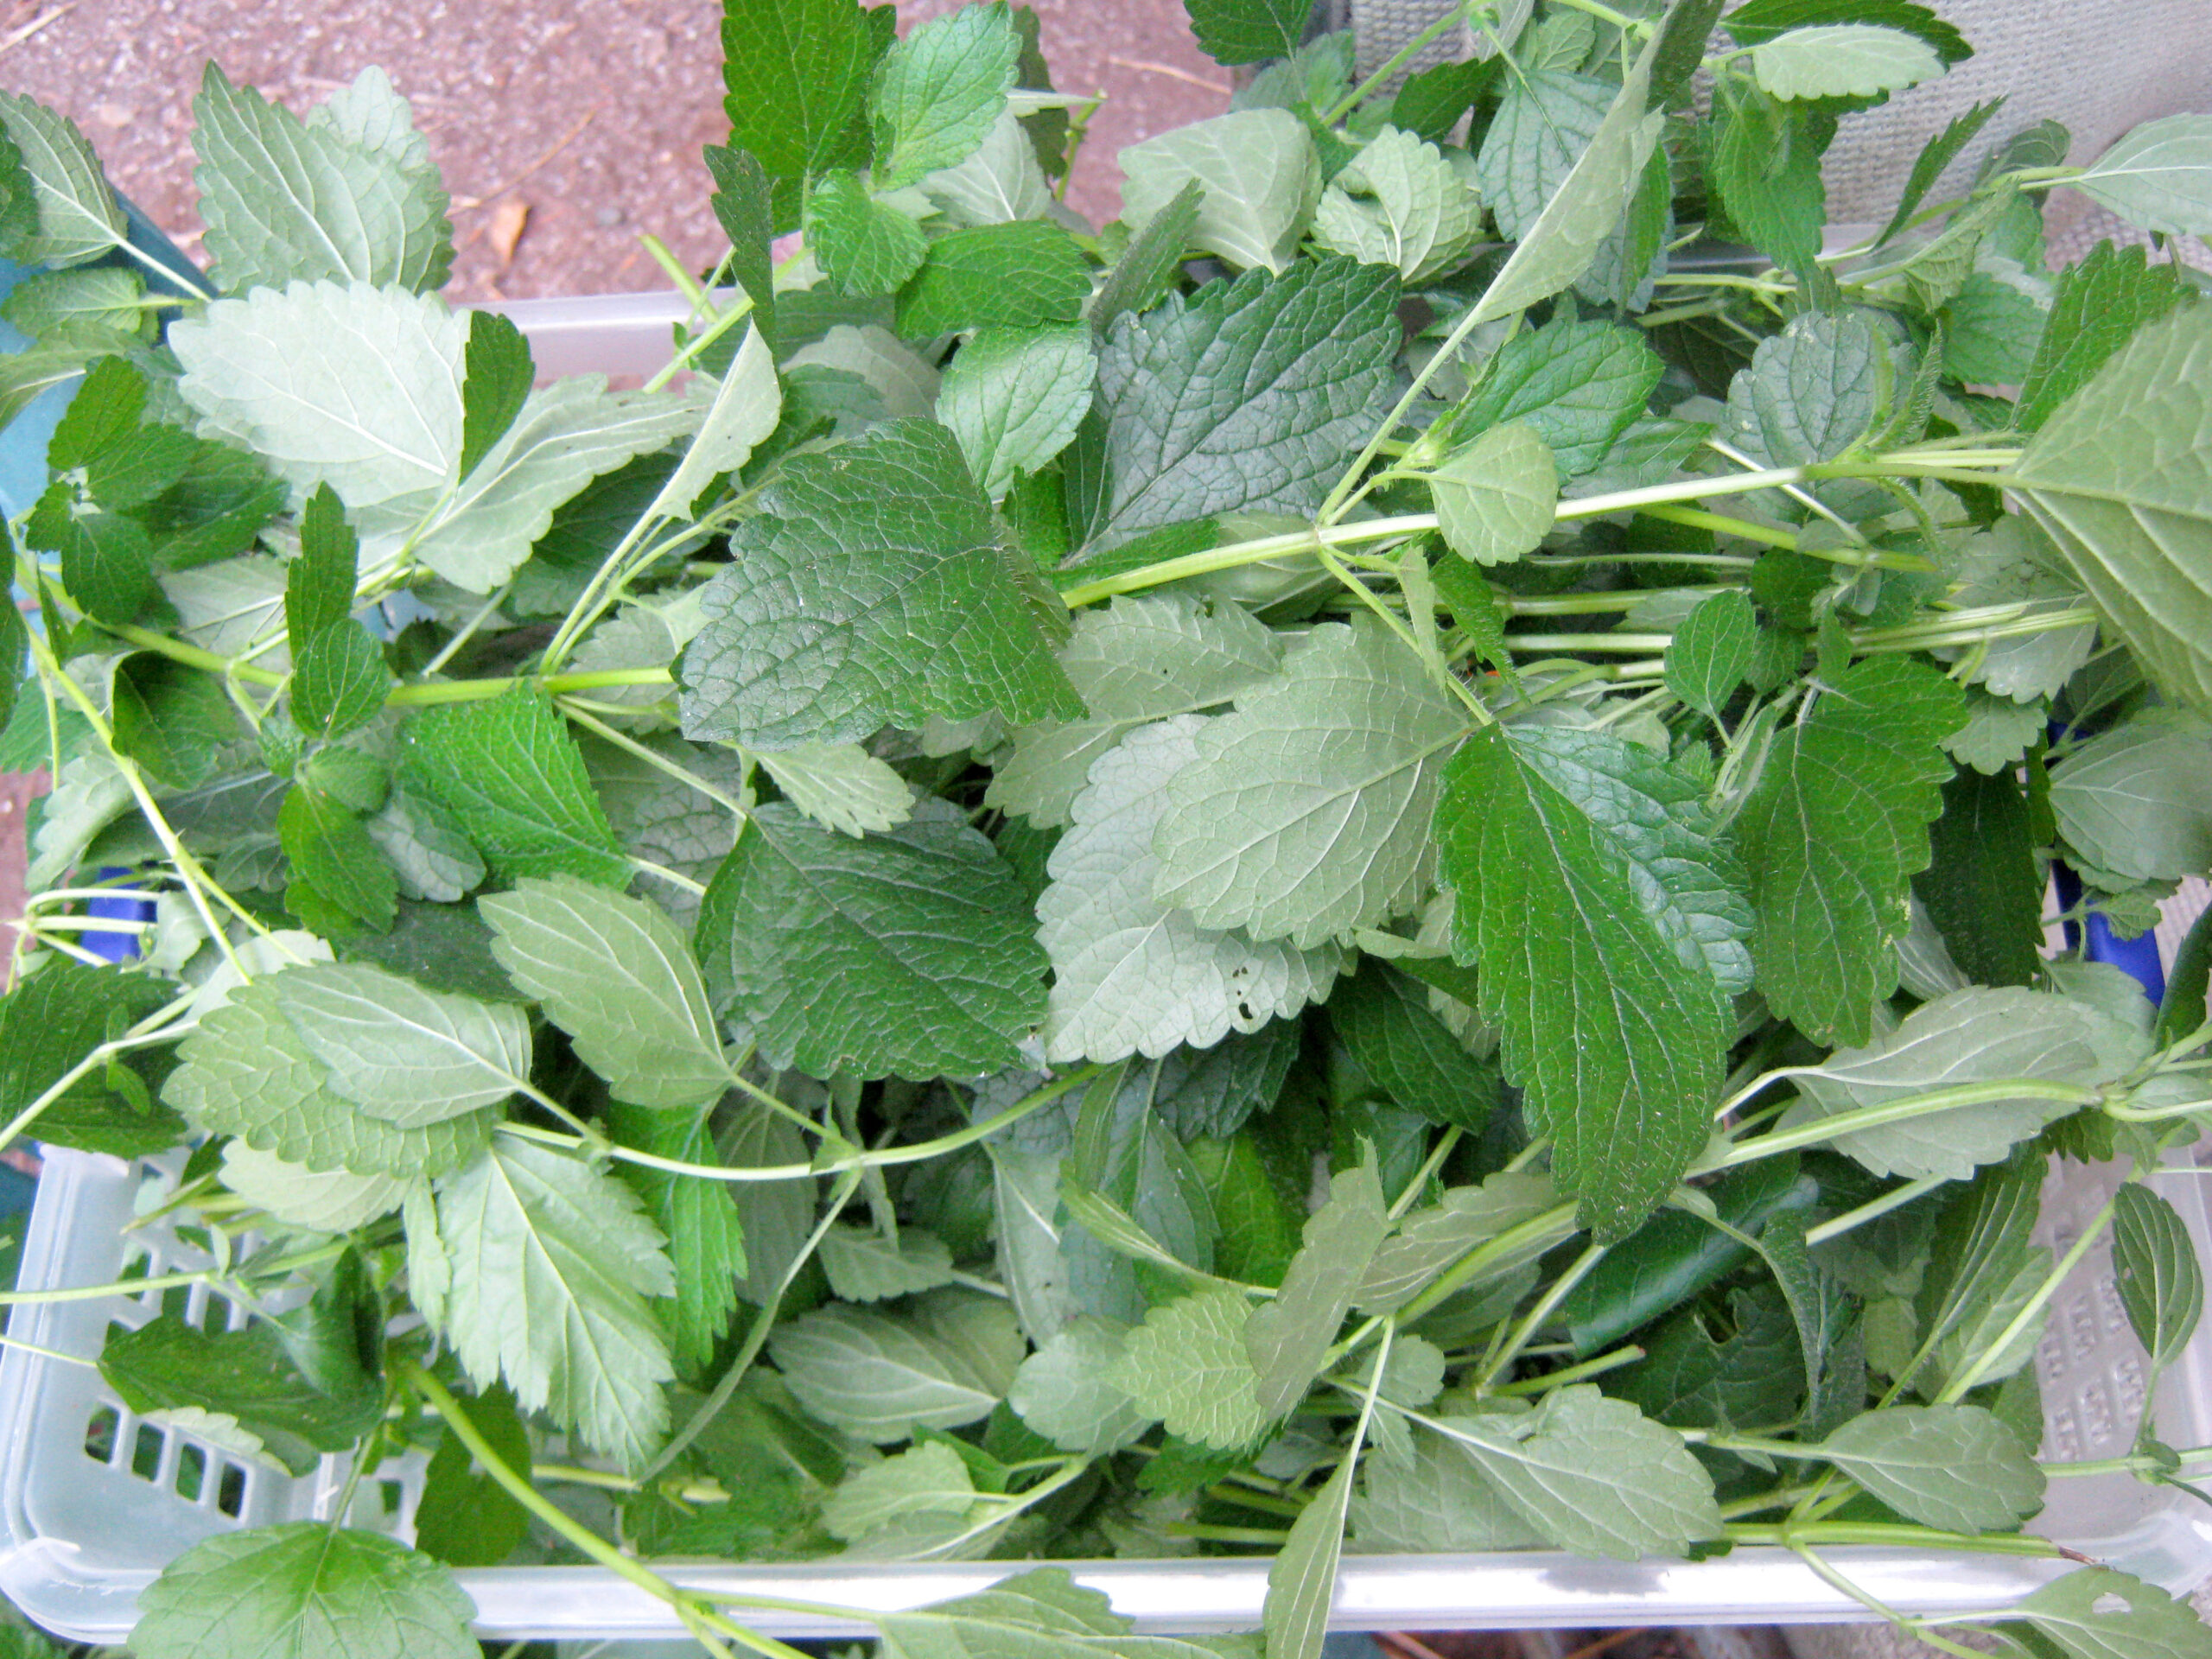 Harvesting lemon balm for drying